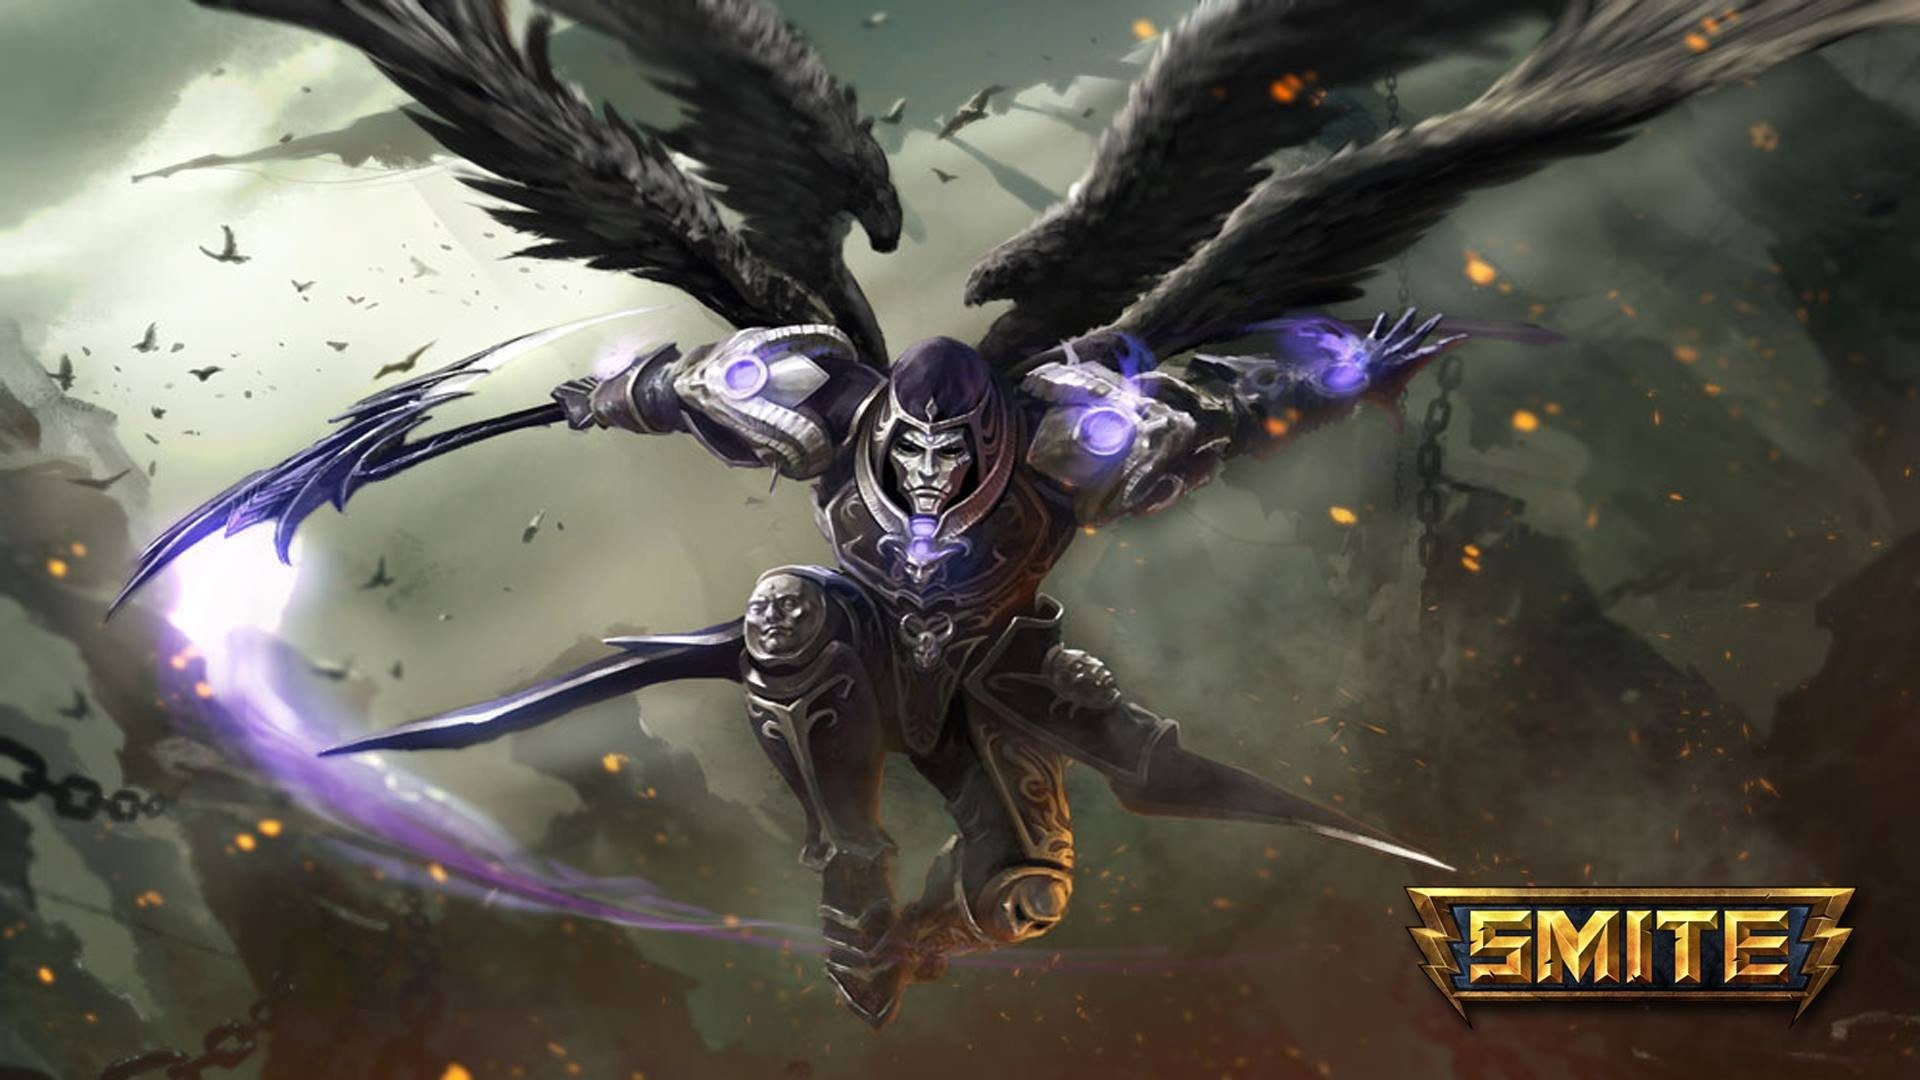 Smite Thanatos Hd Wallpapers Desktop And Mobile Images Photos